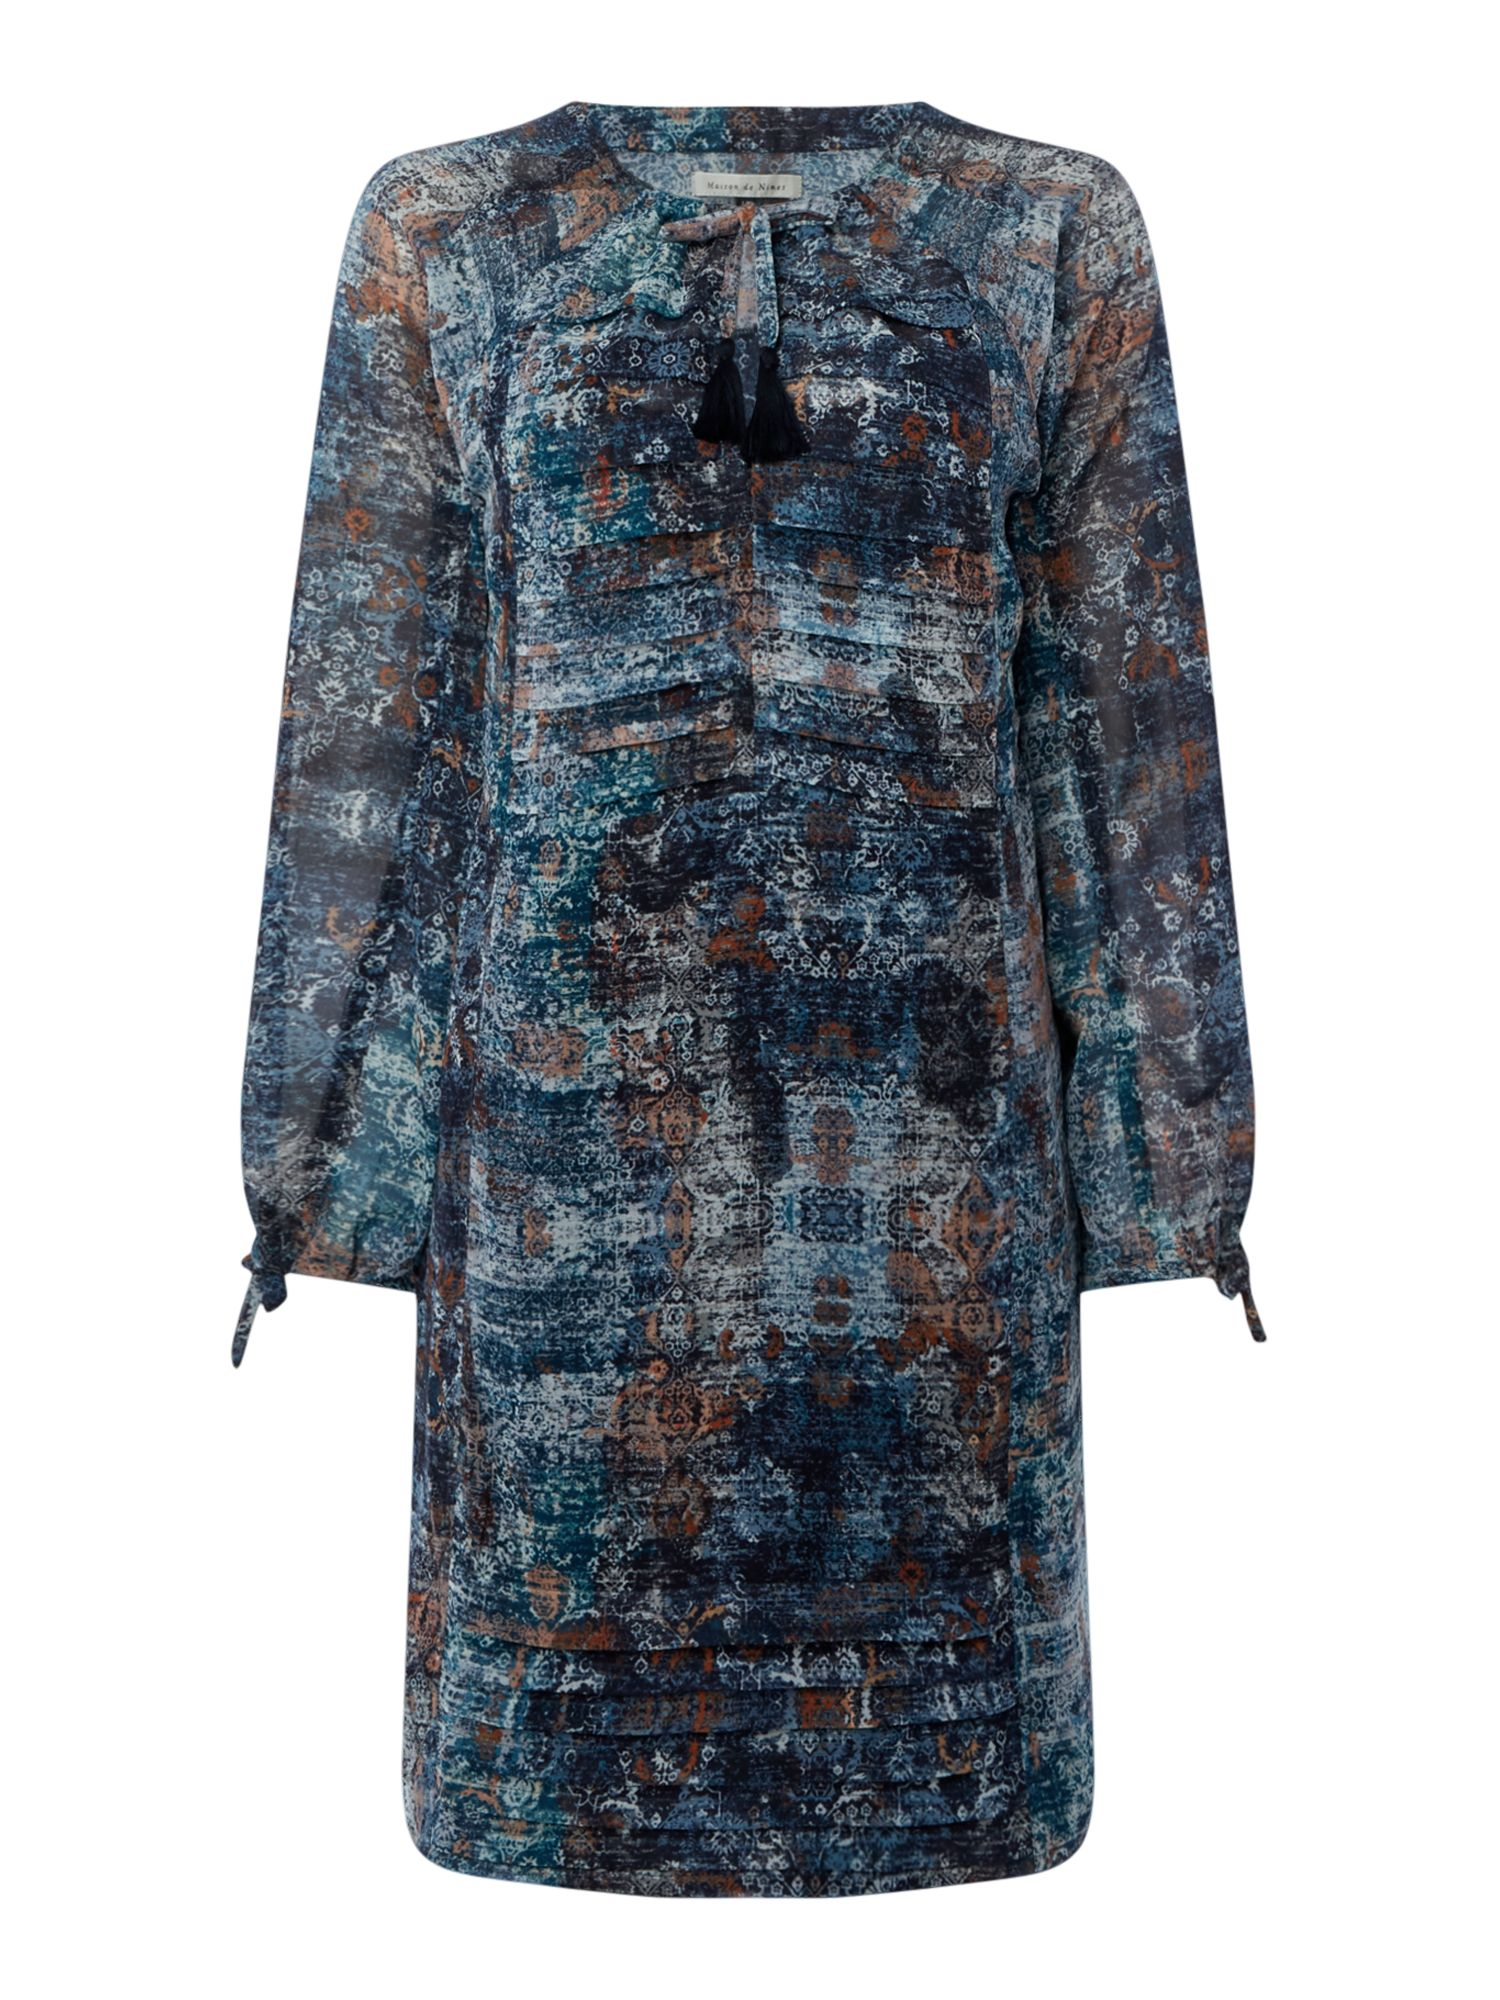 Maison De Nimes Wild Ranch Tapestry Print Pleat Dress, Multi-Coloured